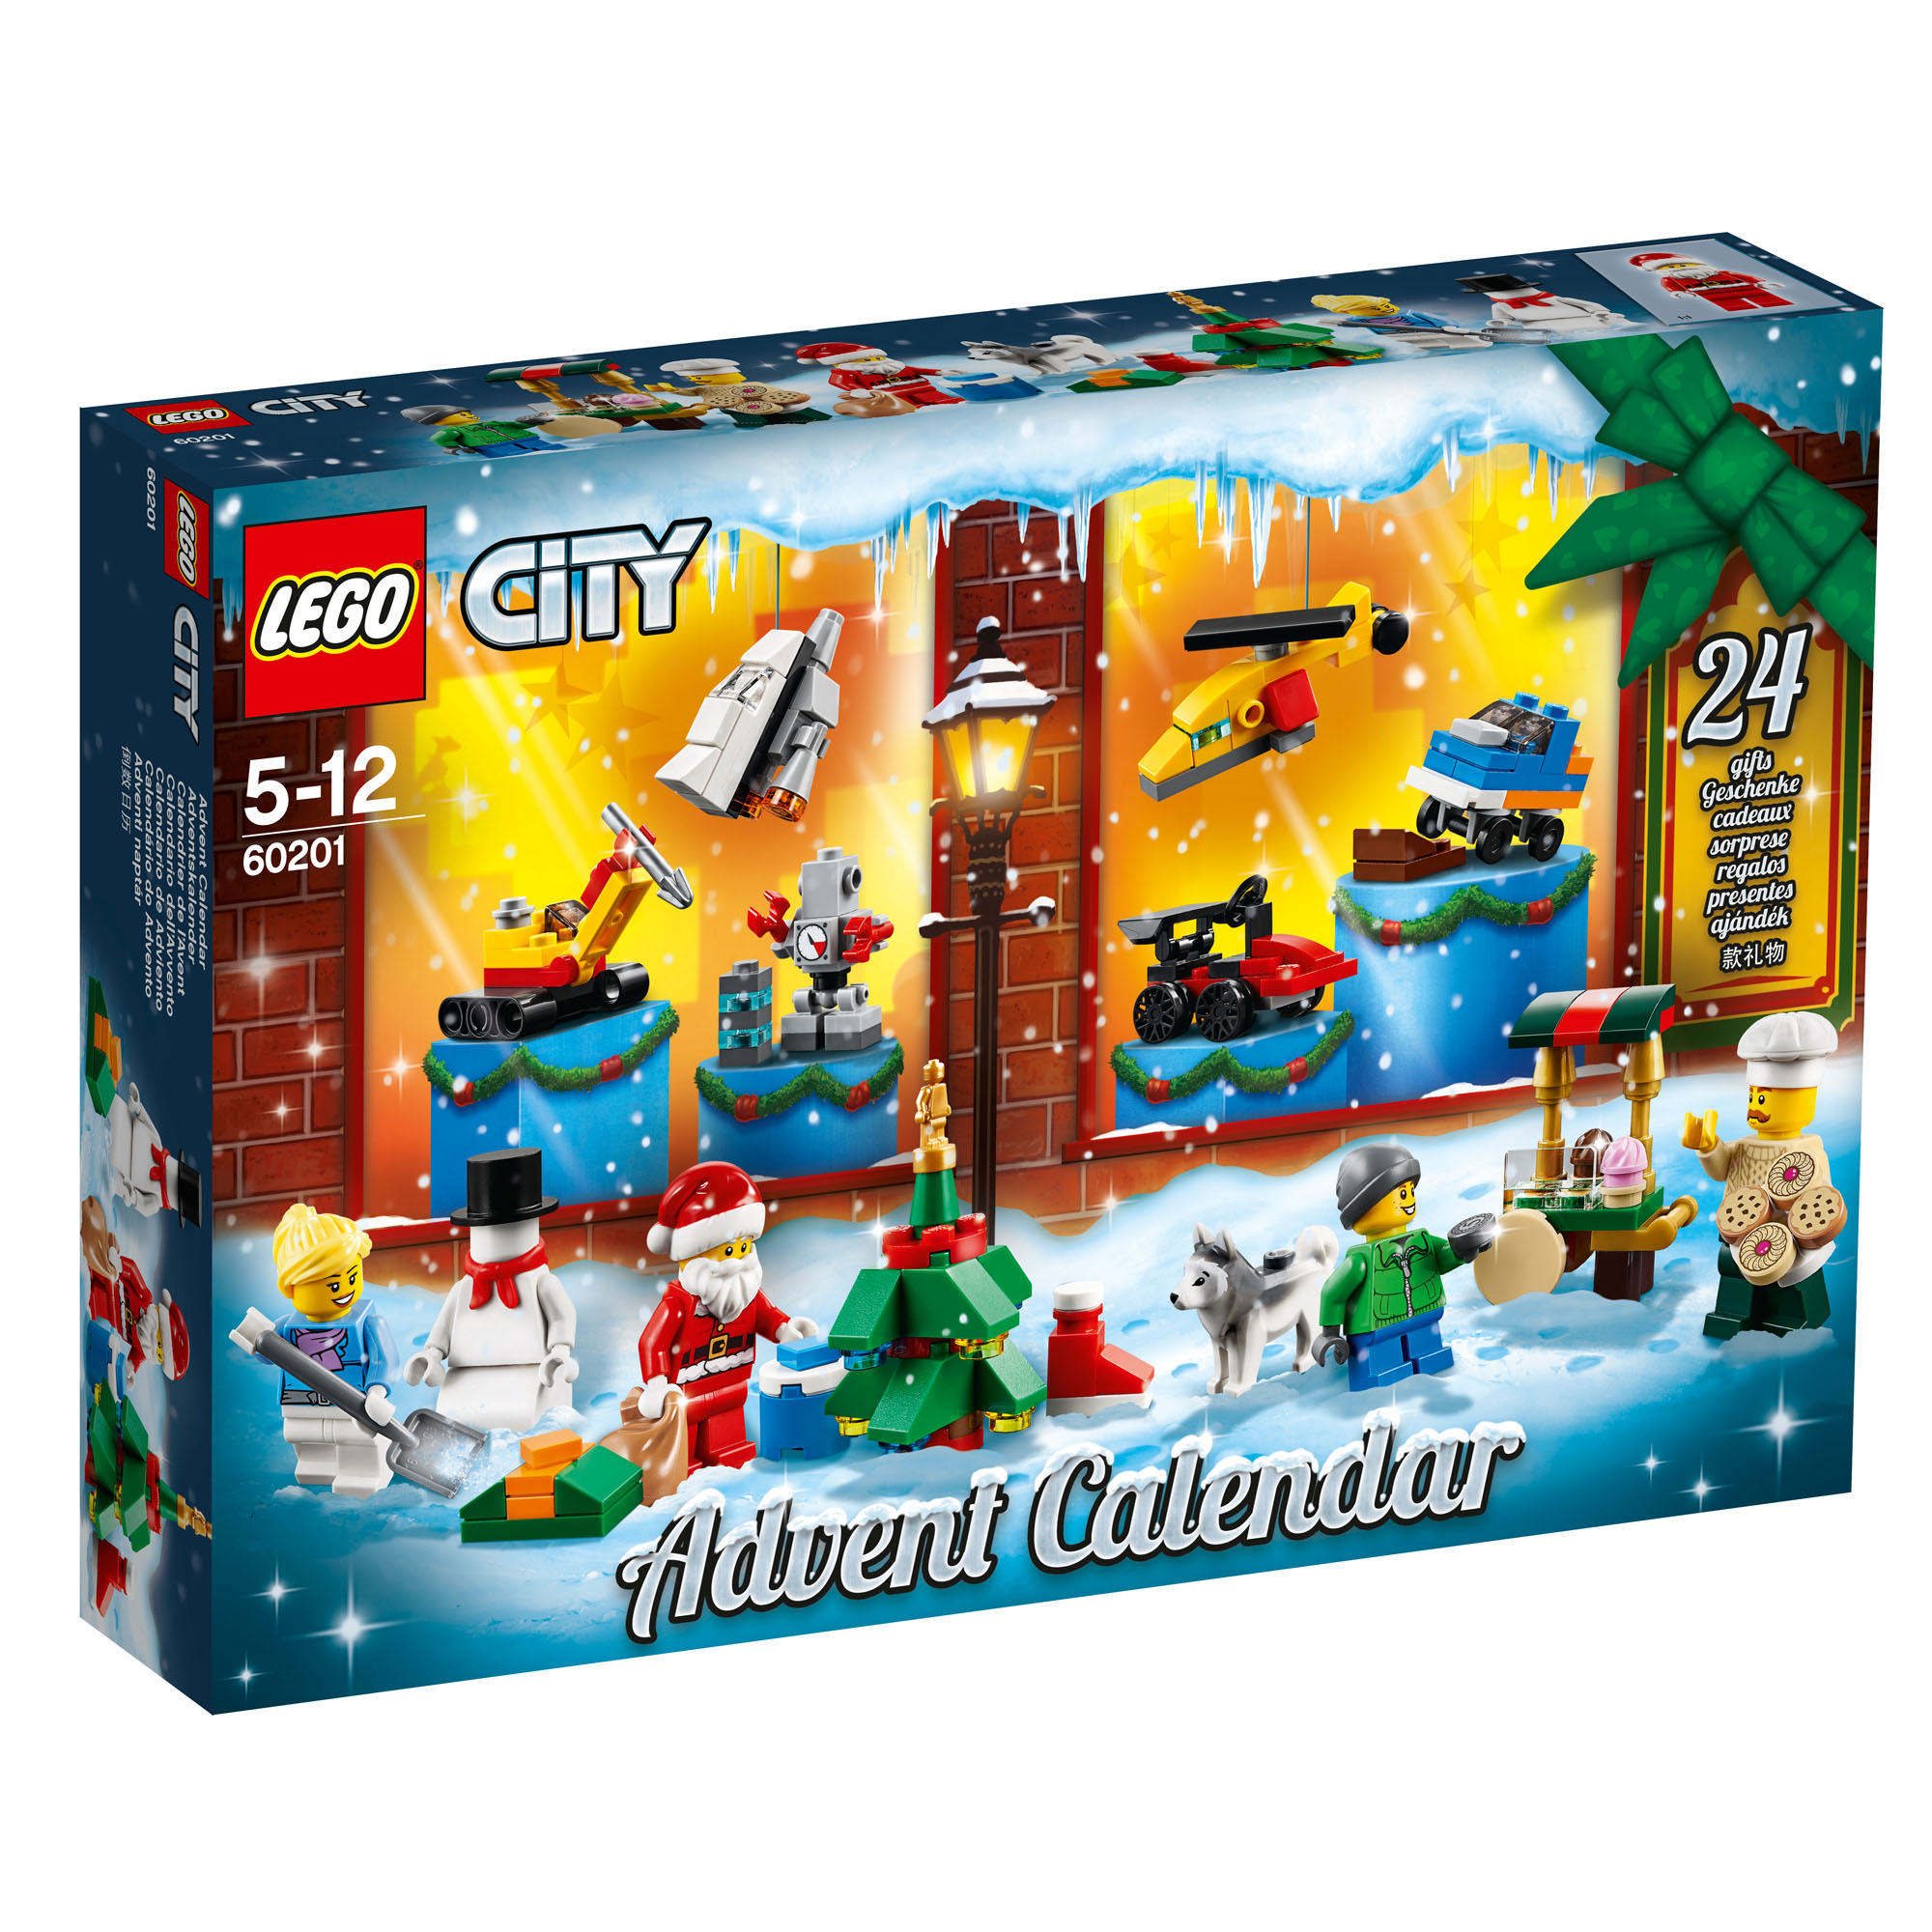 firefox naptár 60201 LEGO CITY 2018 Advent Calendar 24 Doors to Open 313 Pieces  firefox naptár